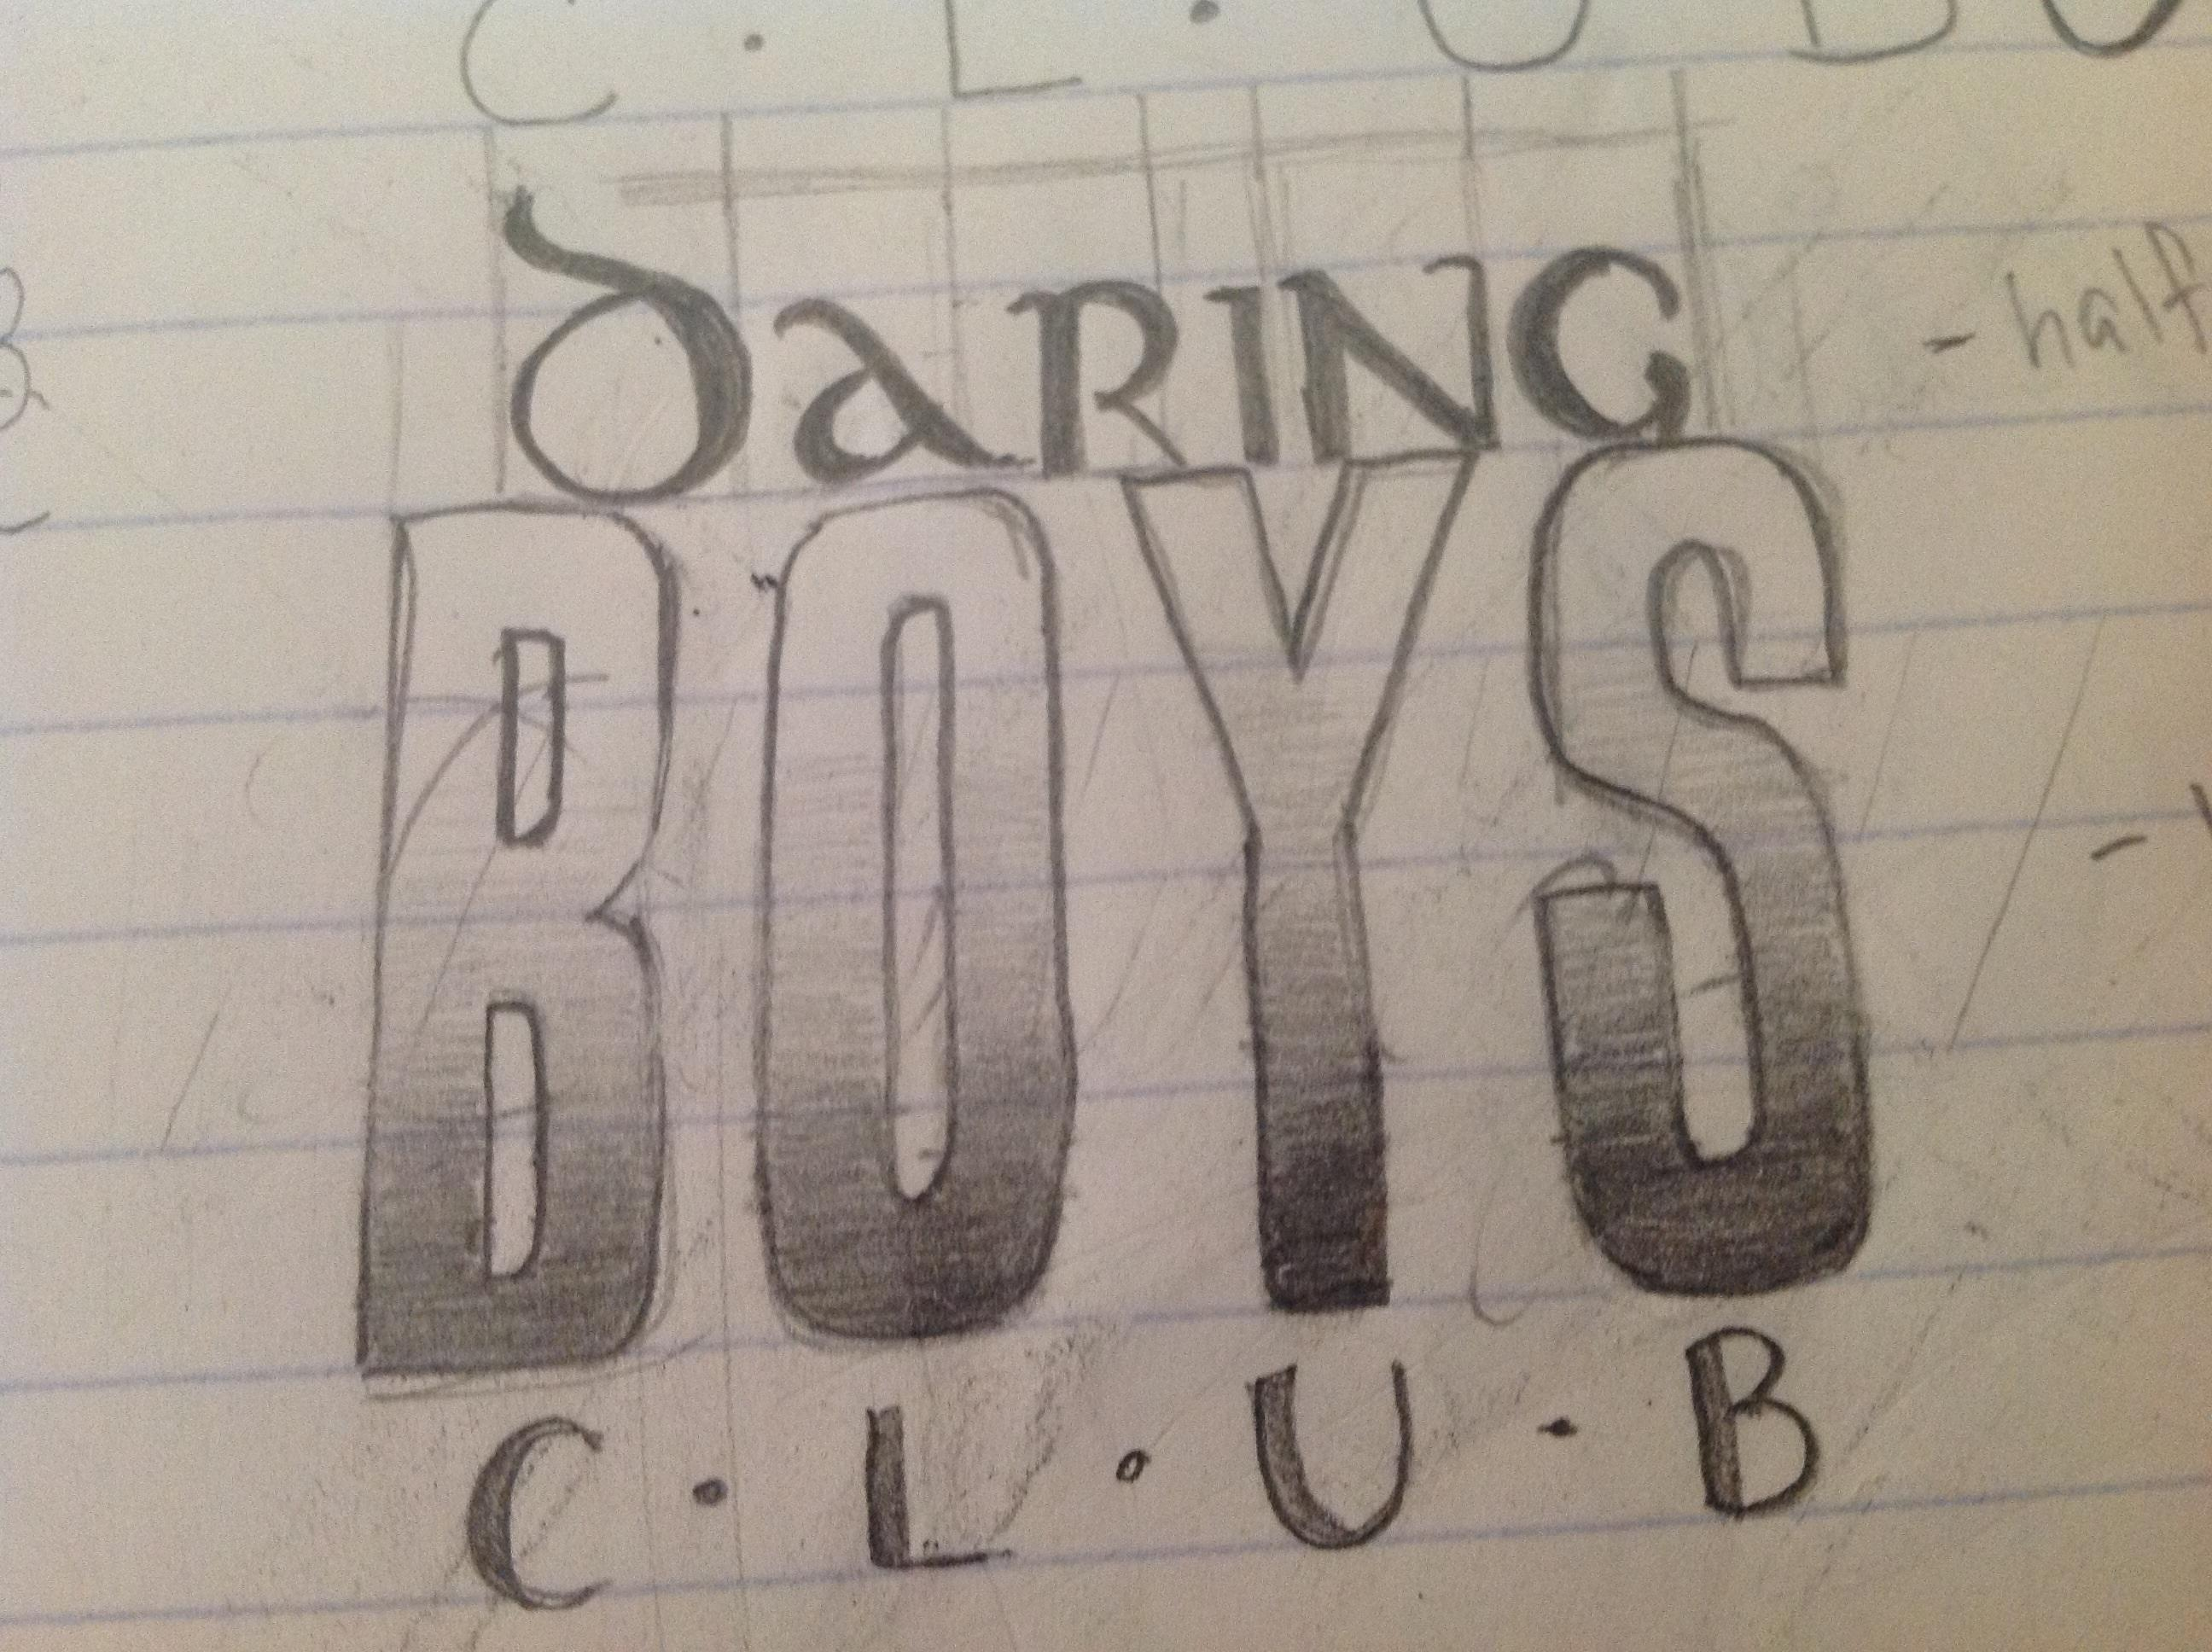 Daring Boys Club - image 1 - student project